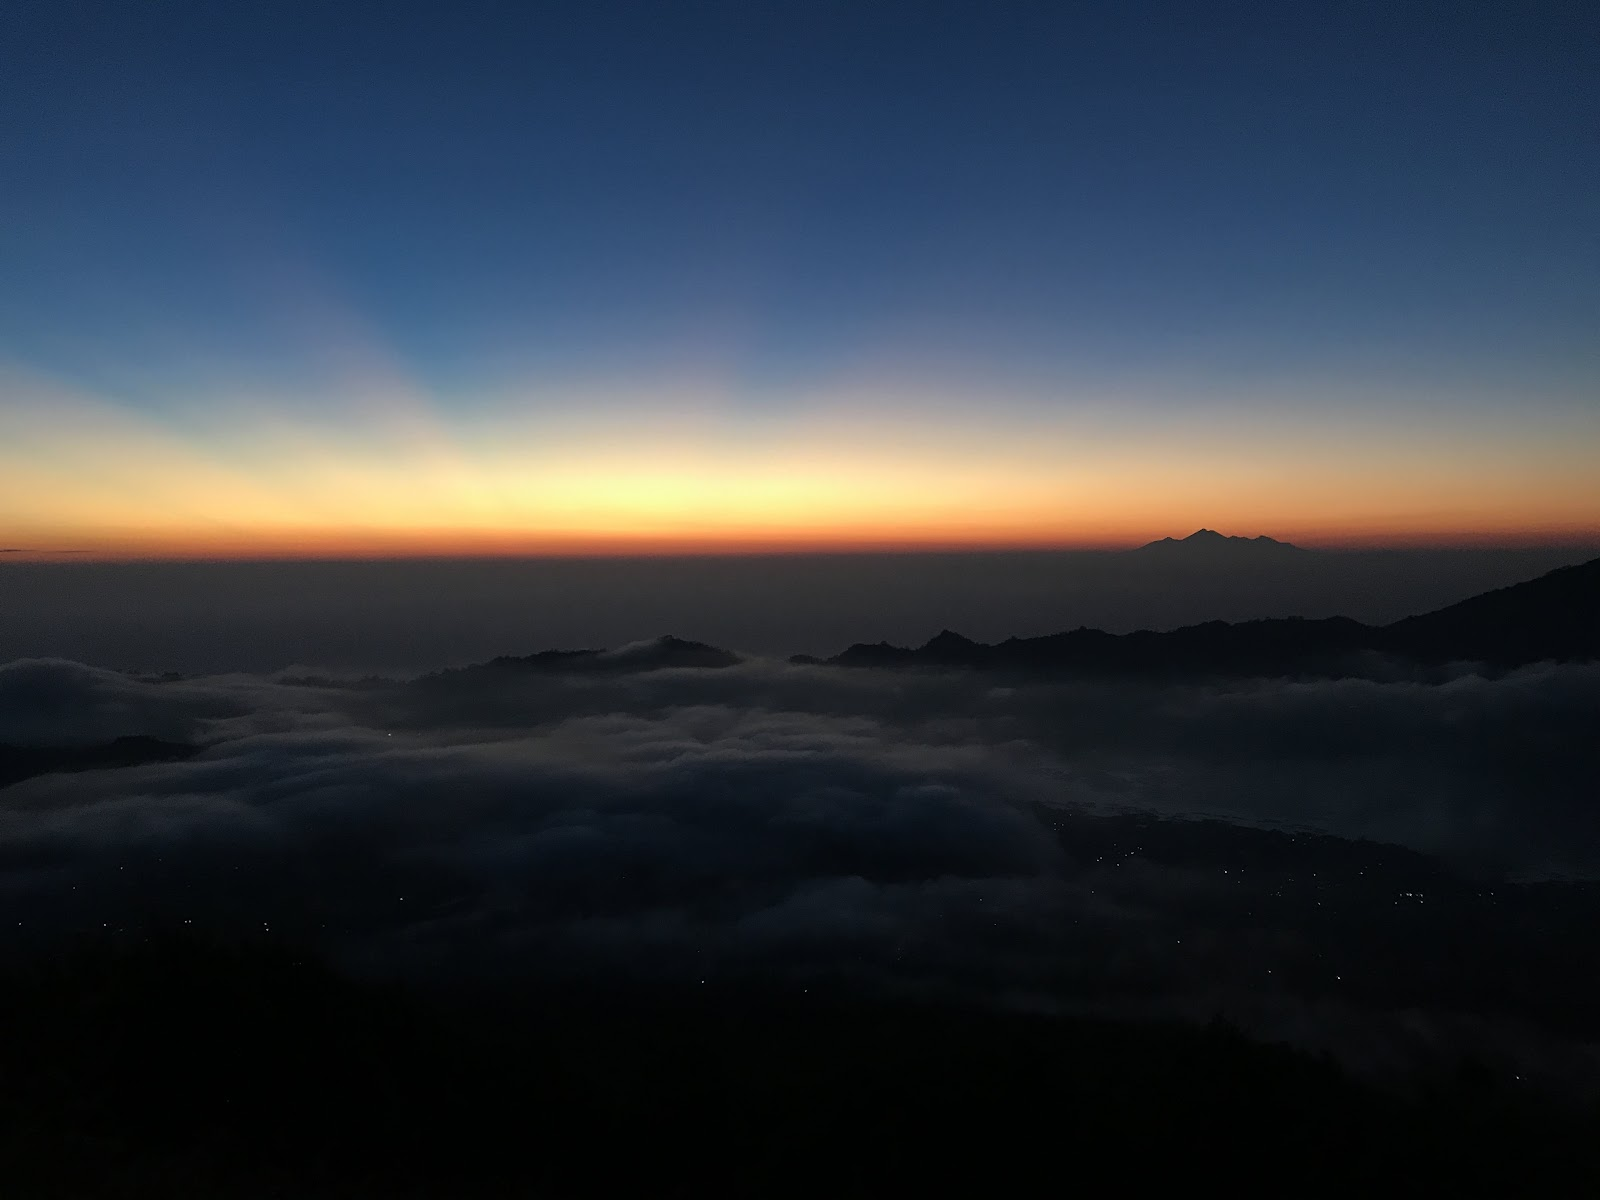 sunrise in mount batur